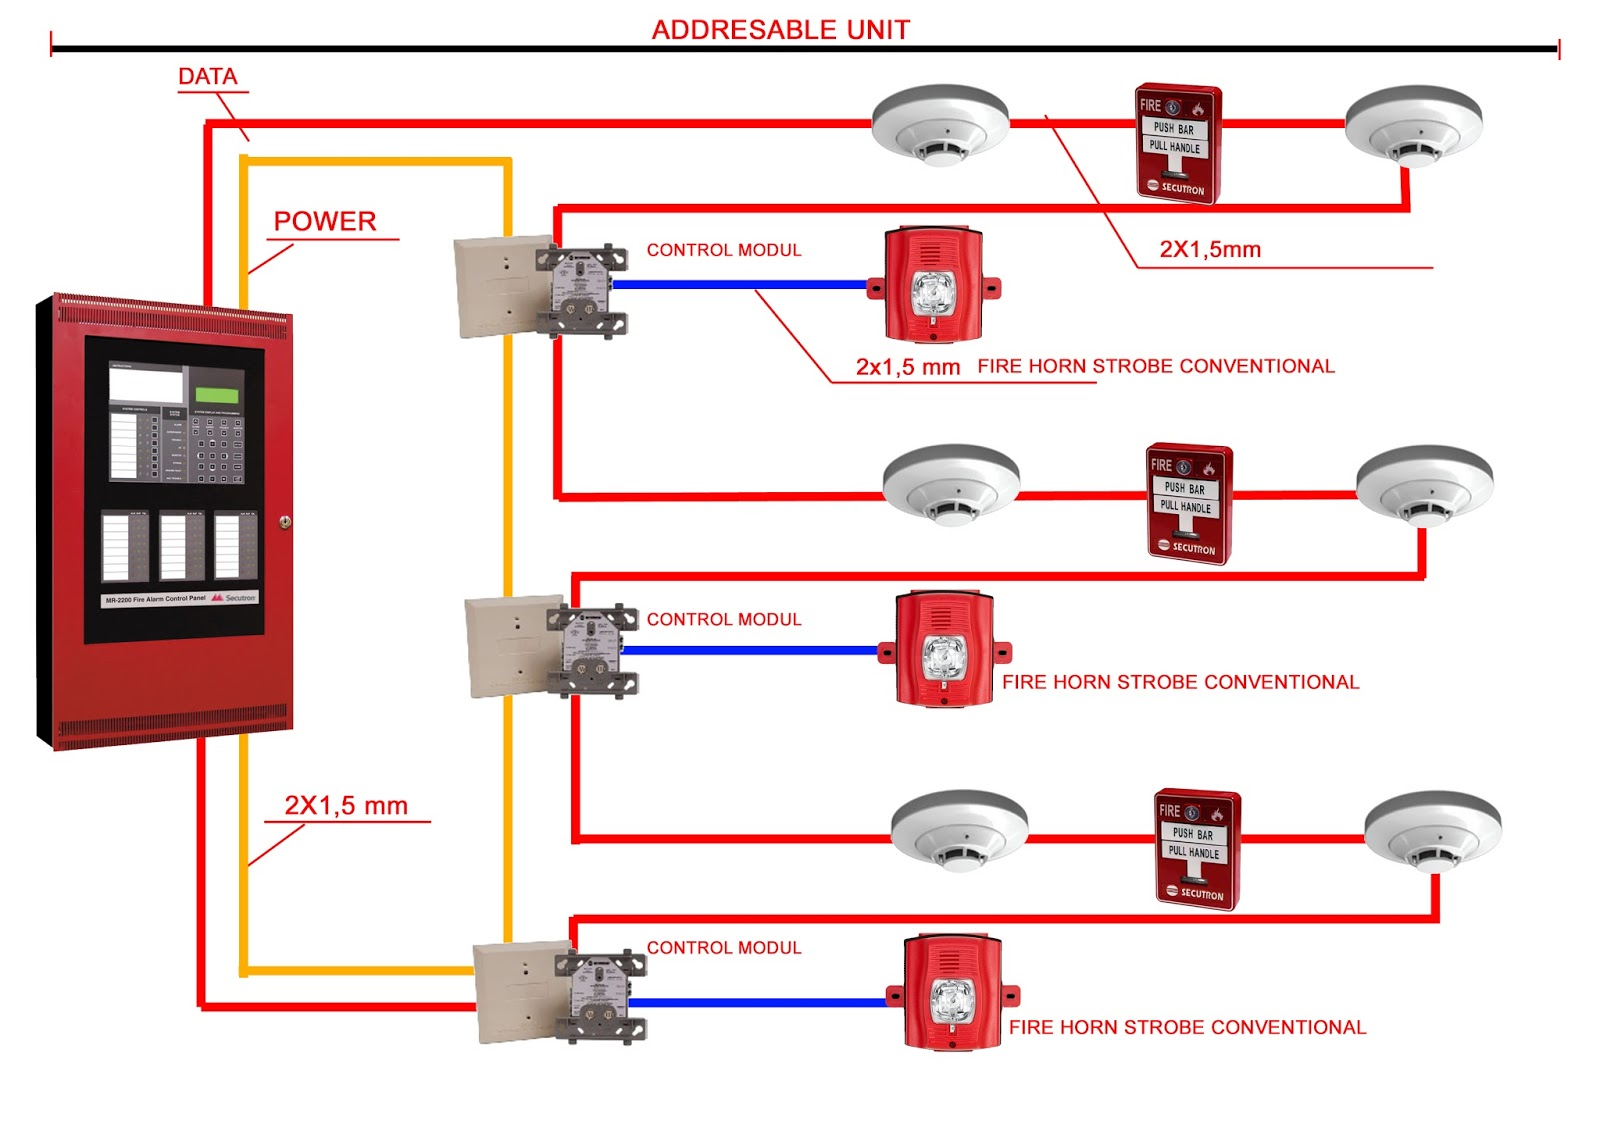 KLATEN FIRESAFETYSECURITYSOLUTION: FIRE ALARM SECUTRON